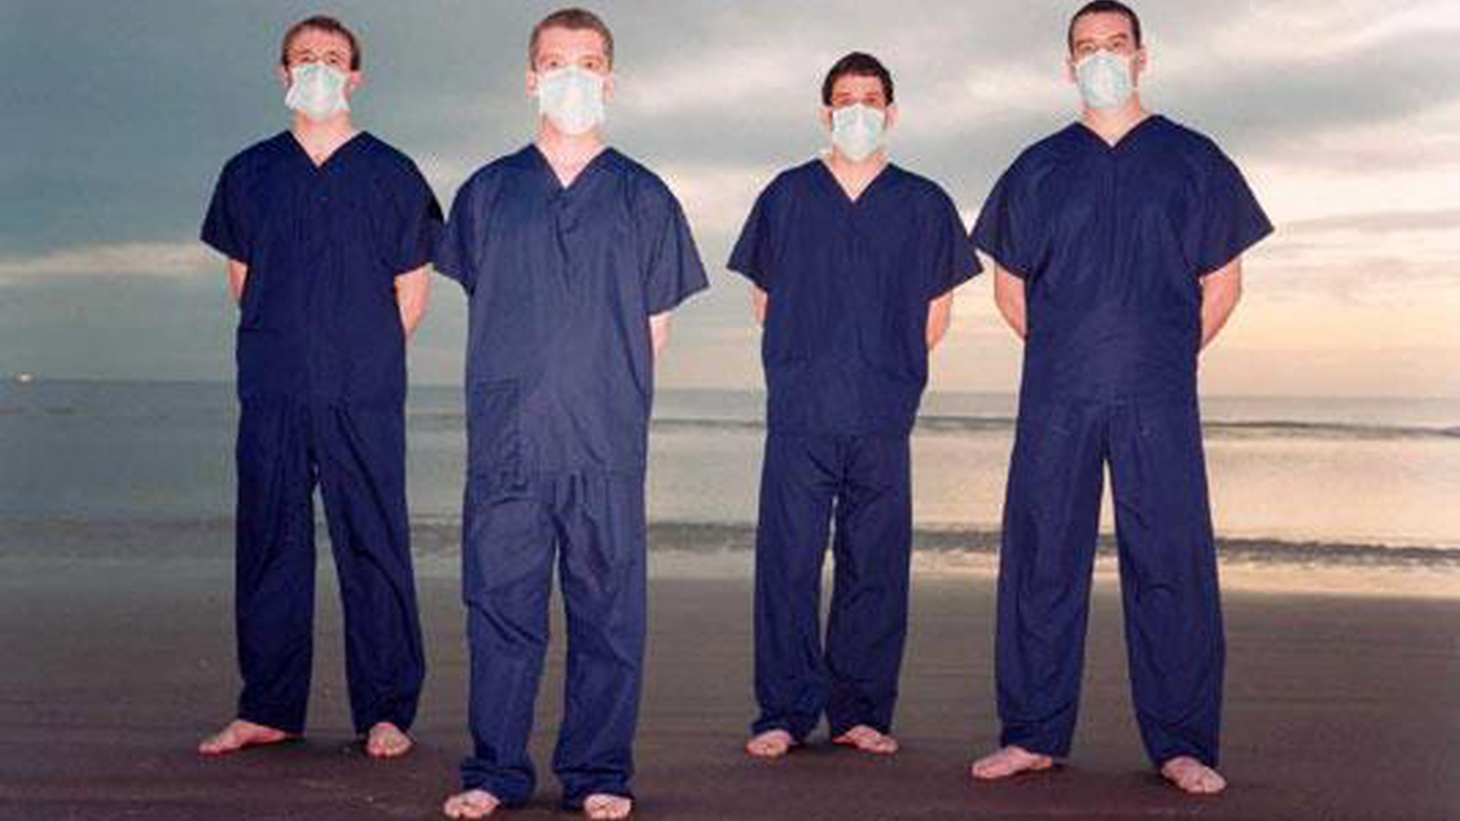 Liverpool's Clinic have always had an air of mystery -- and not just because they cover their faces with surgical masks.